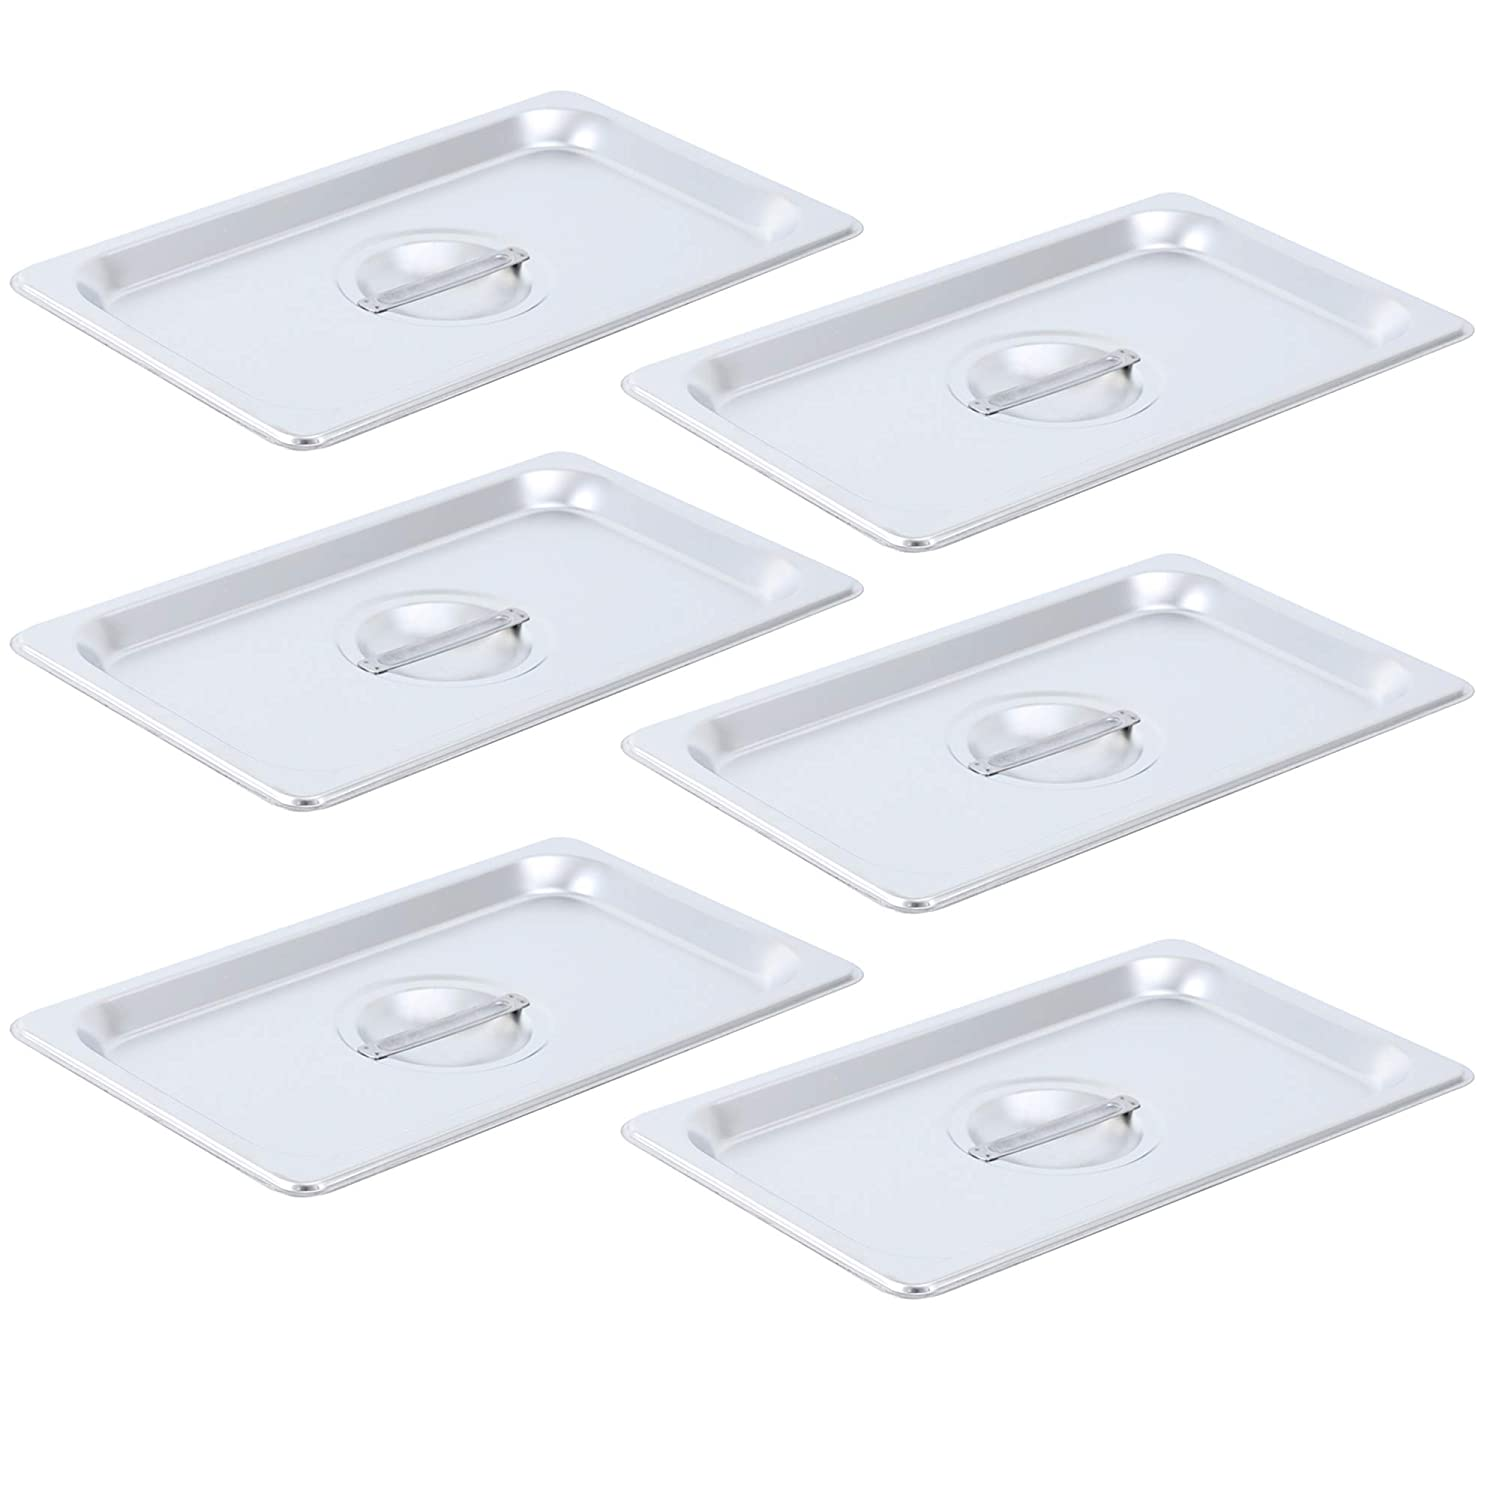 Aplancee 6Pcs Steam Table Pan Lid of Stainless Steel with Handle 1/3 Size for Food Cover